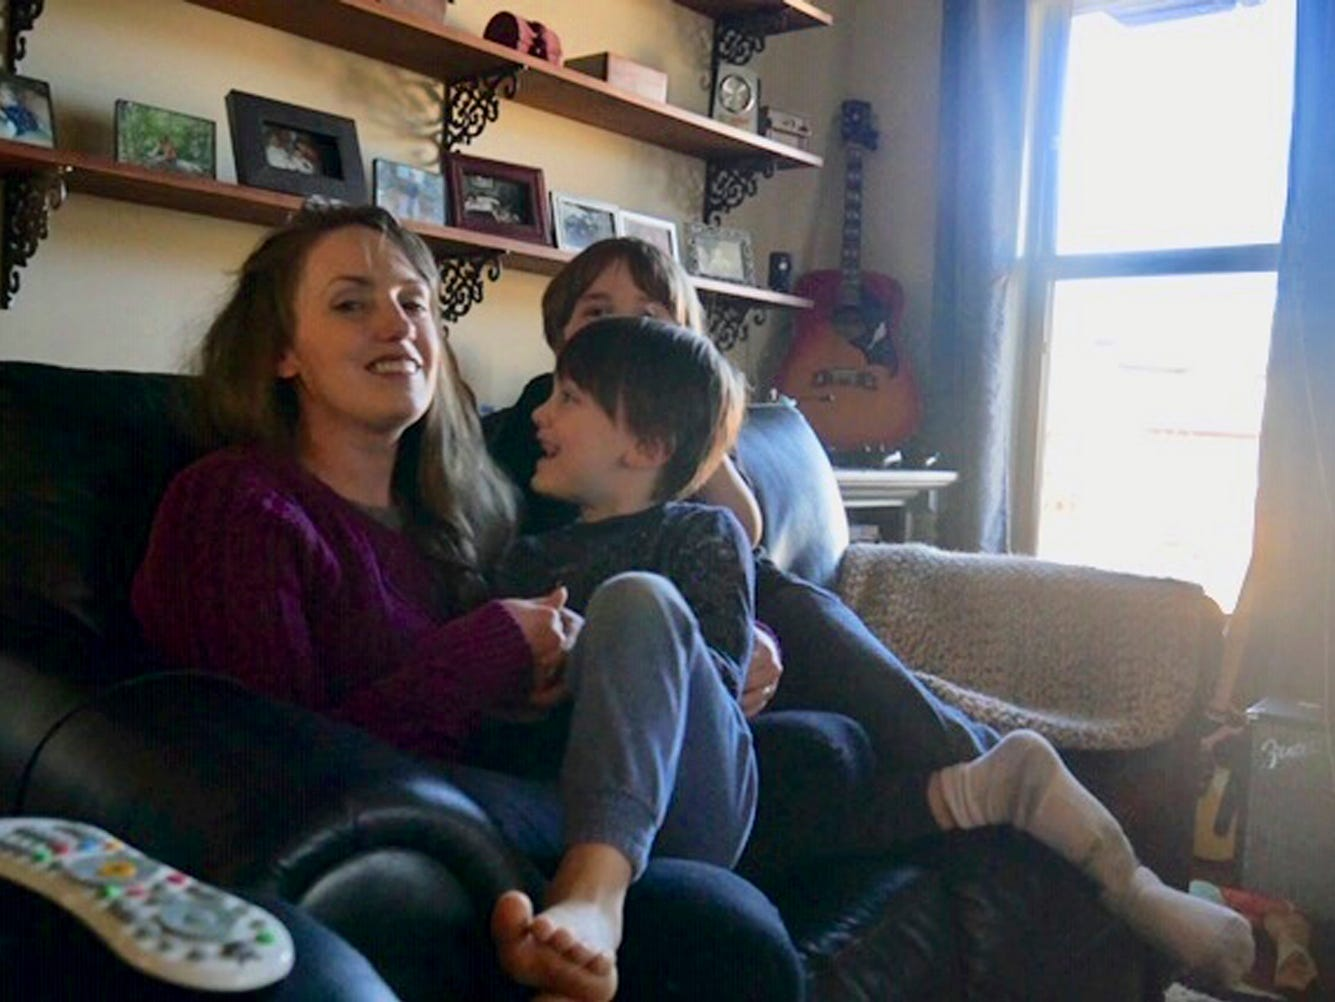 In lawsuit, a Catholic mother from Simpsonville alleges discrimination by Miracle Hill